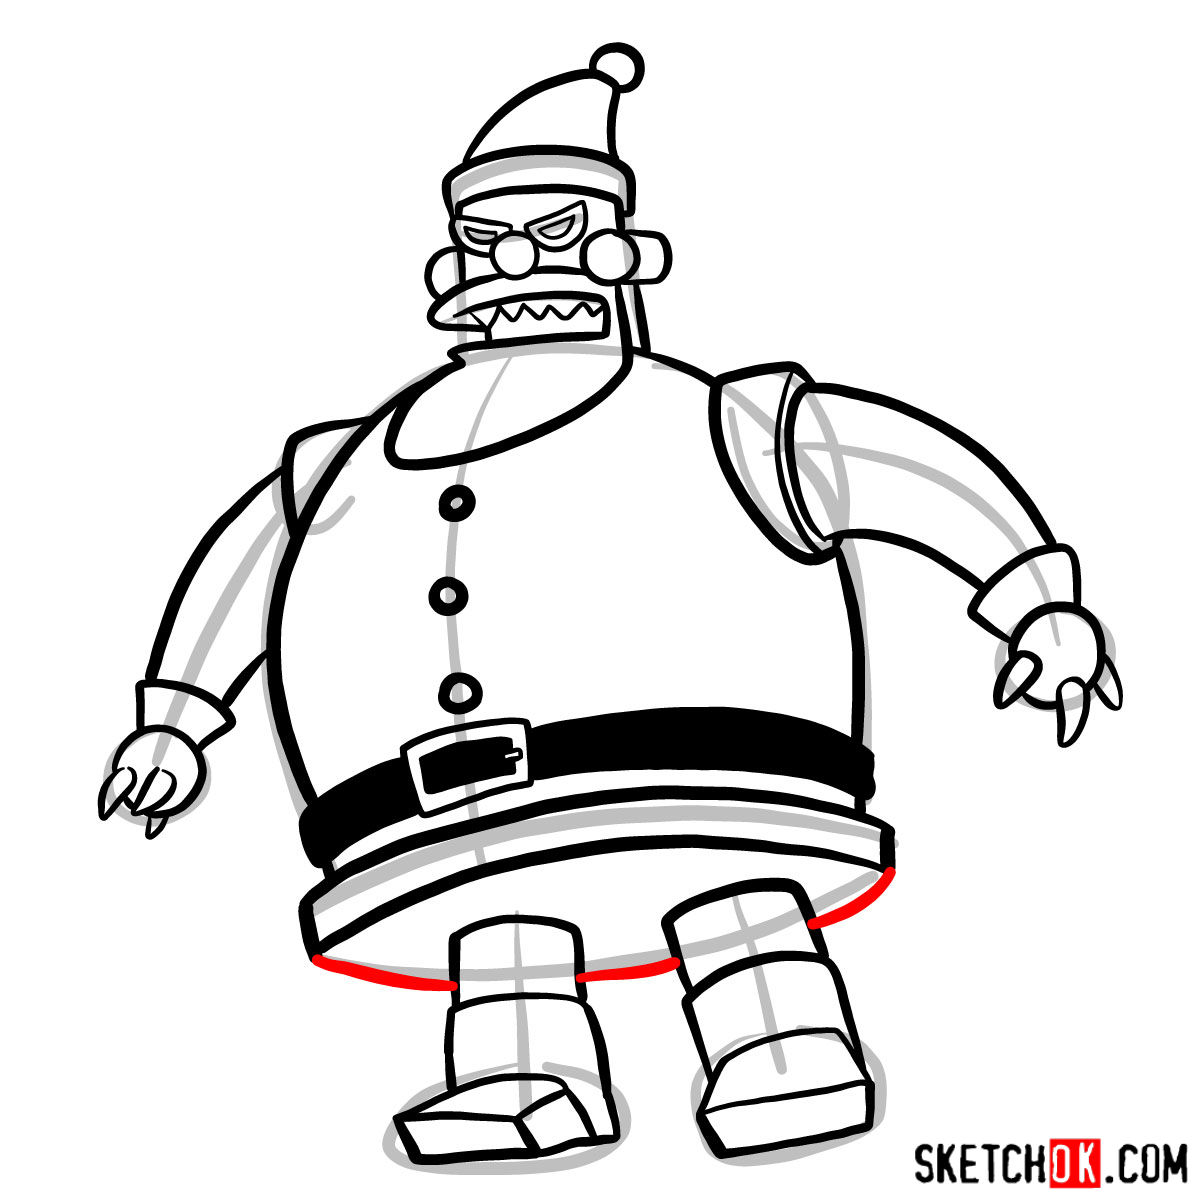 How to draw Robot Santa Claus - step 10